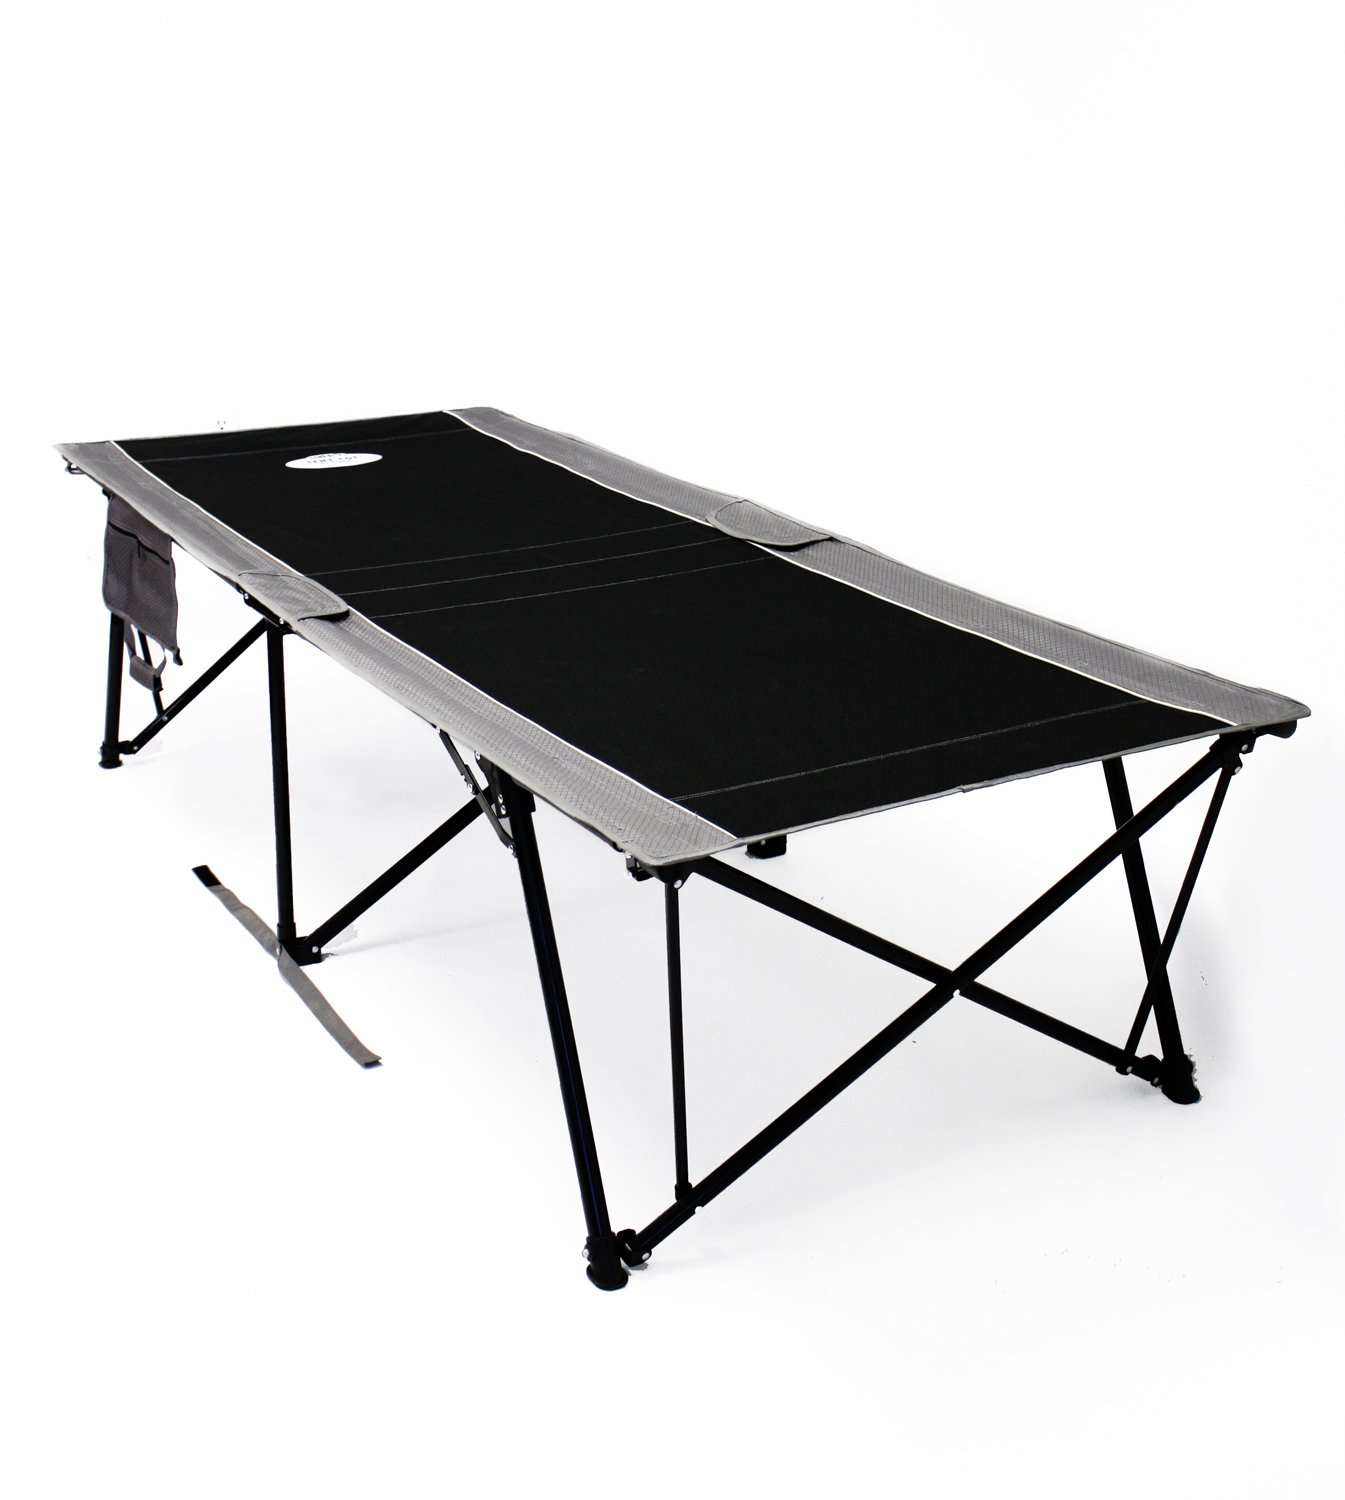 Best Camping Cot Guide